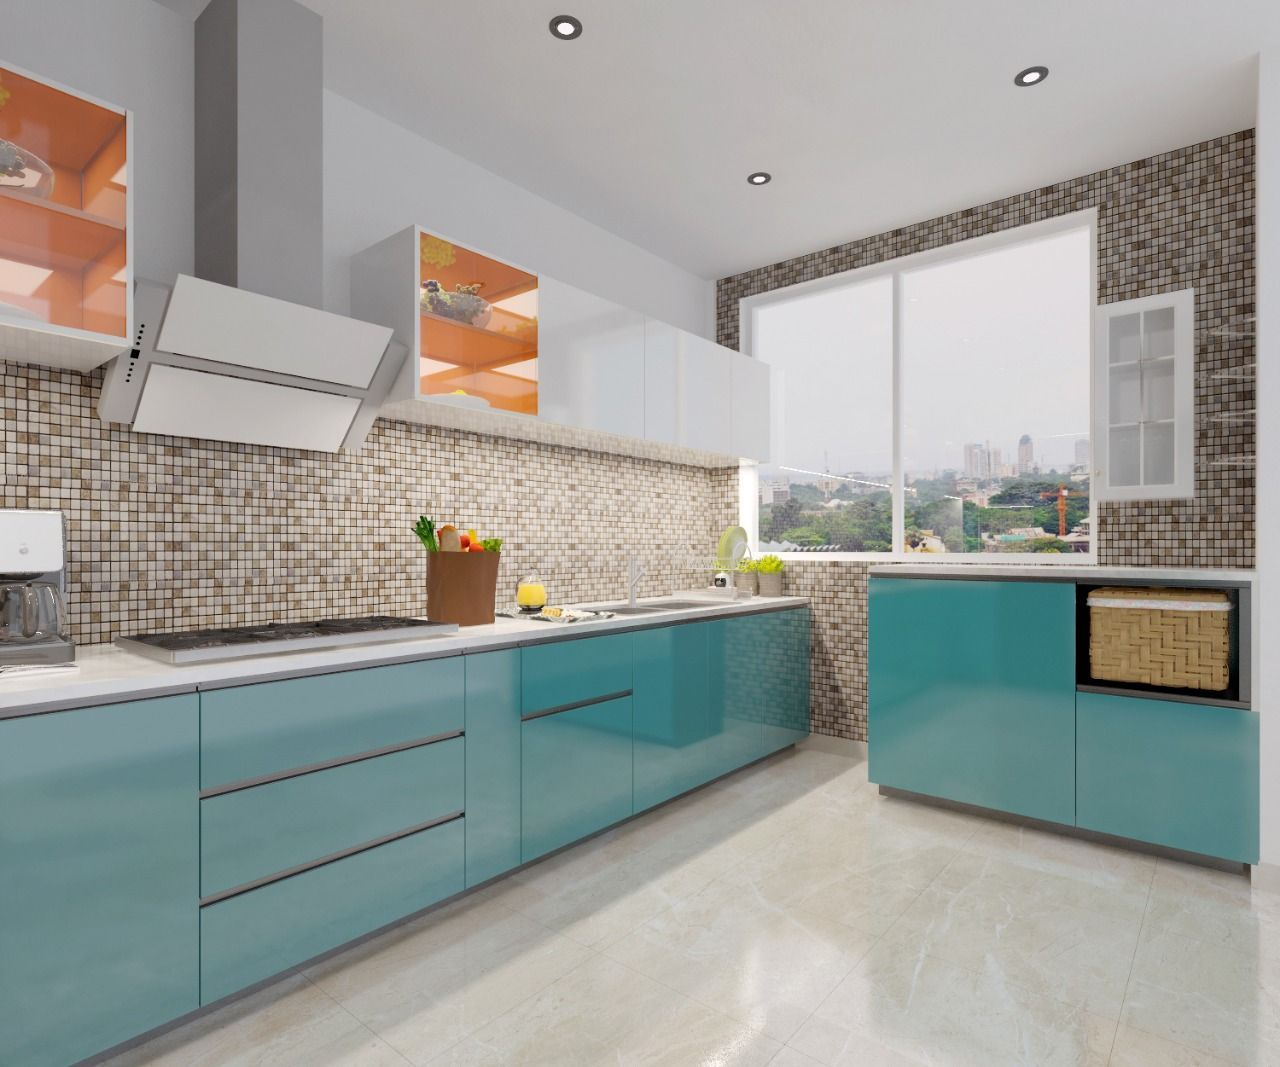 Latest Modular Kitchen Design by RV Dezigns Get Your Free 3D